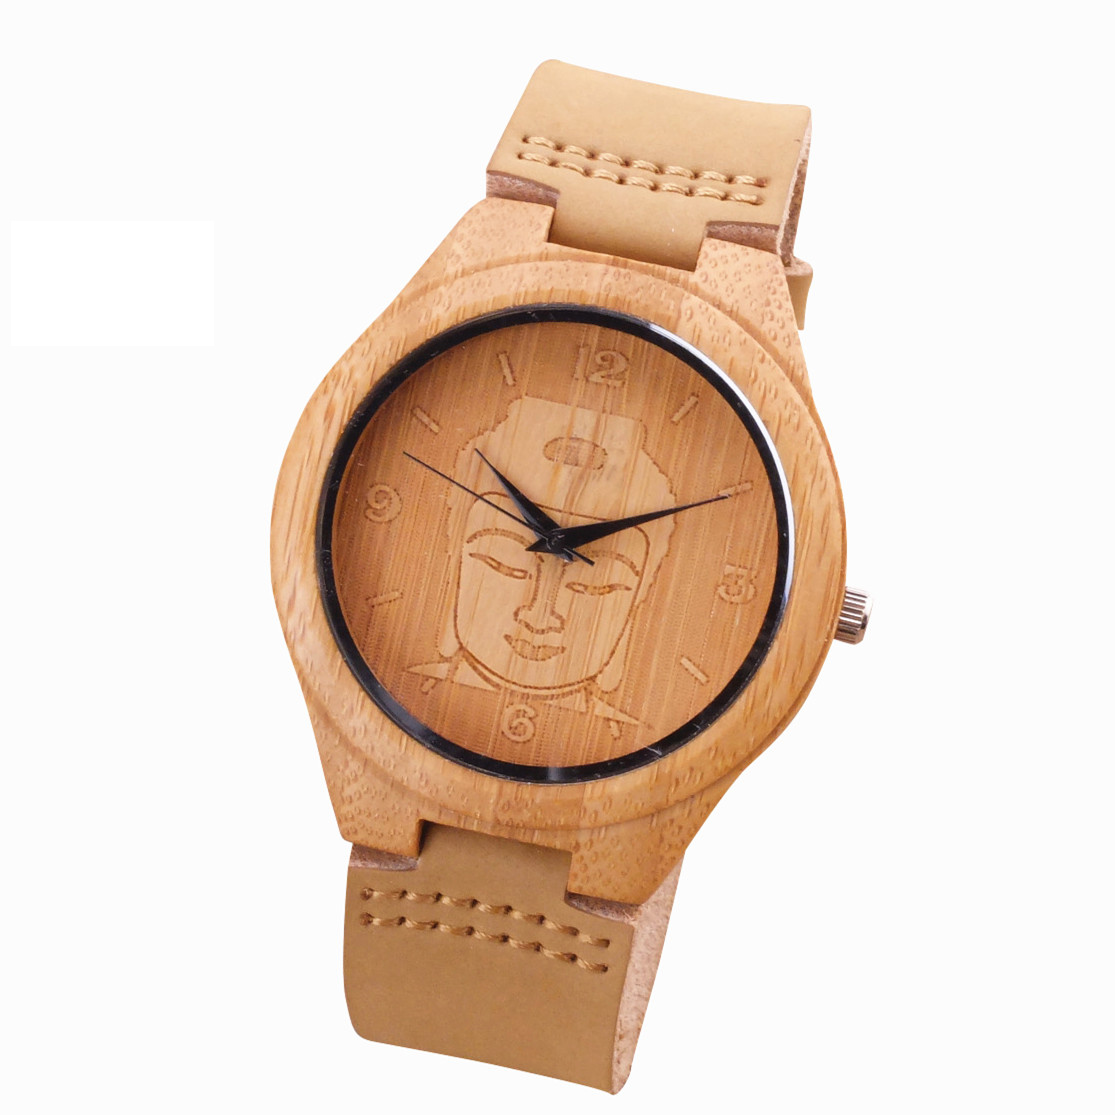 2017 Bamboo Wood Watch Minimalist Buddha Genuine Leather Band Strap Nature Wood Bangle Wristwatch Unisex Reloj Hombre Clock green dial creative wooden watch 2017 relojes hombre leather band bamboo minimalist mens nature wood relogio masculino